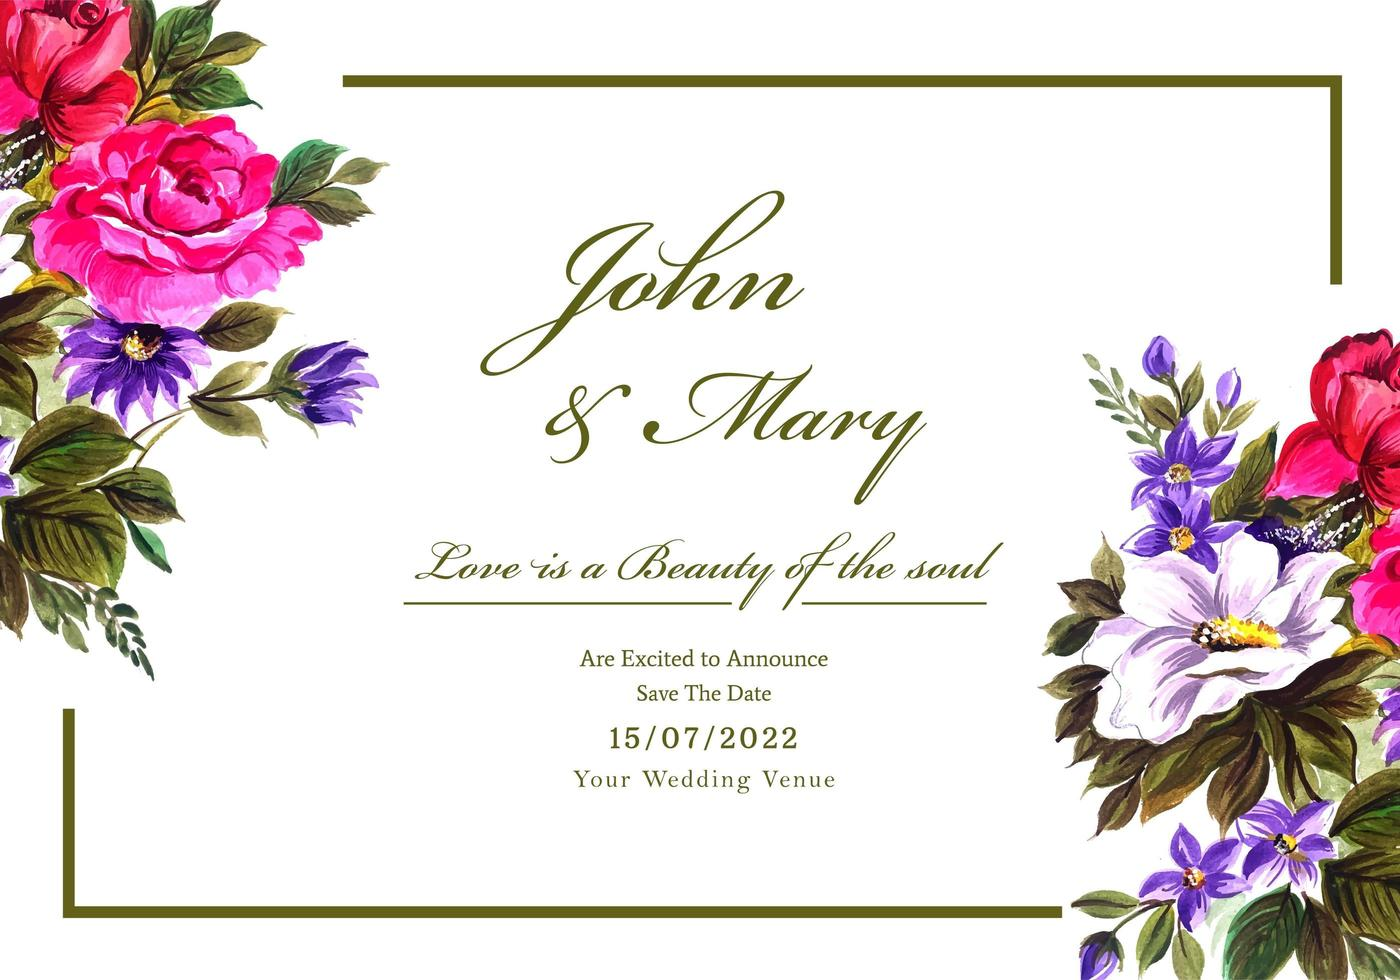 Romantic wedding invitation with colorful flowers vector